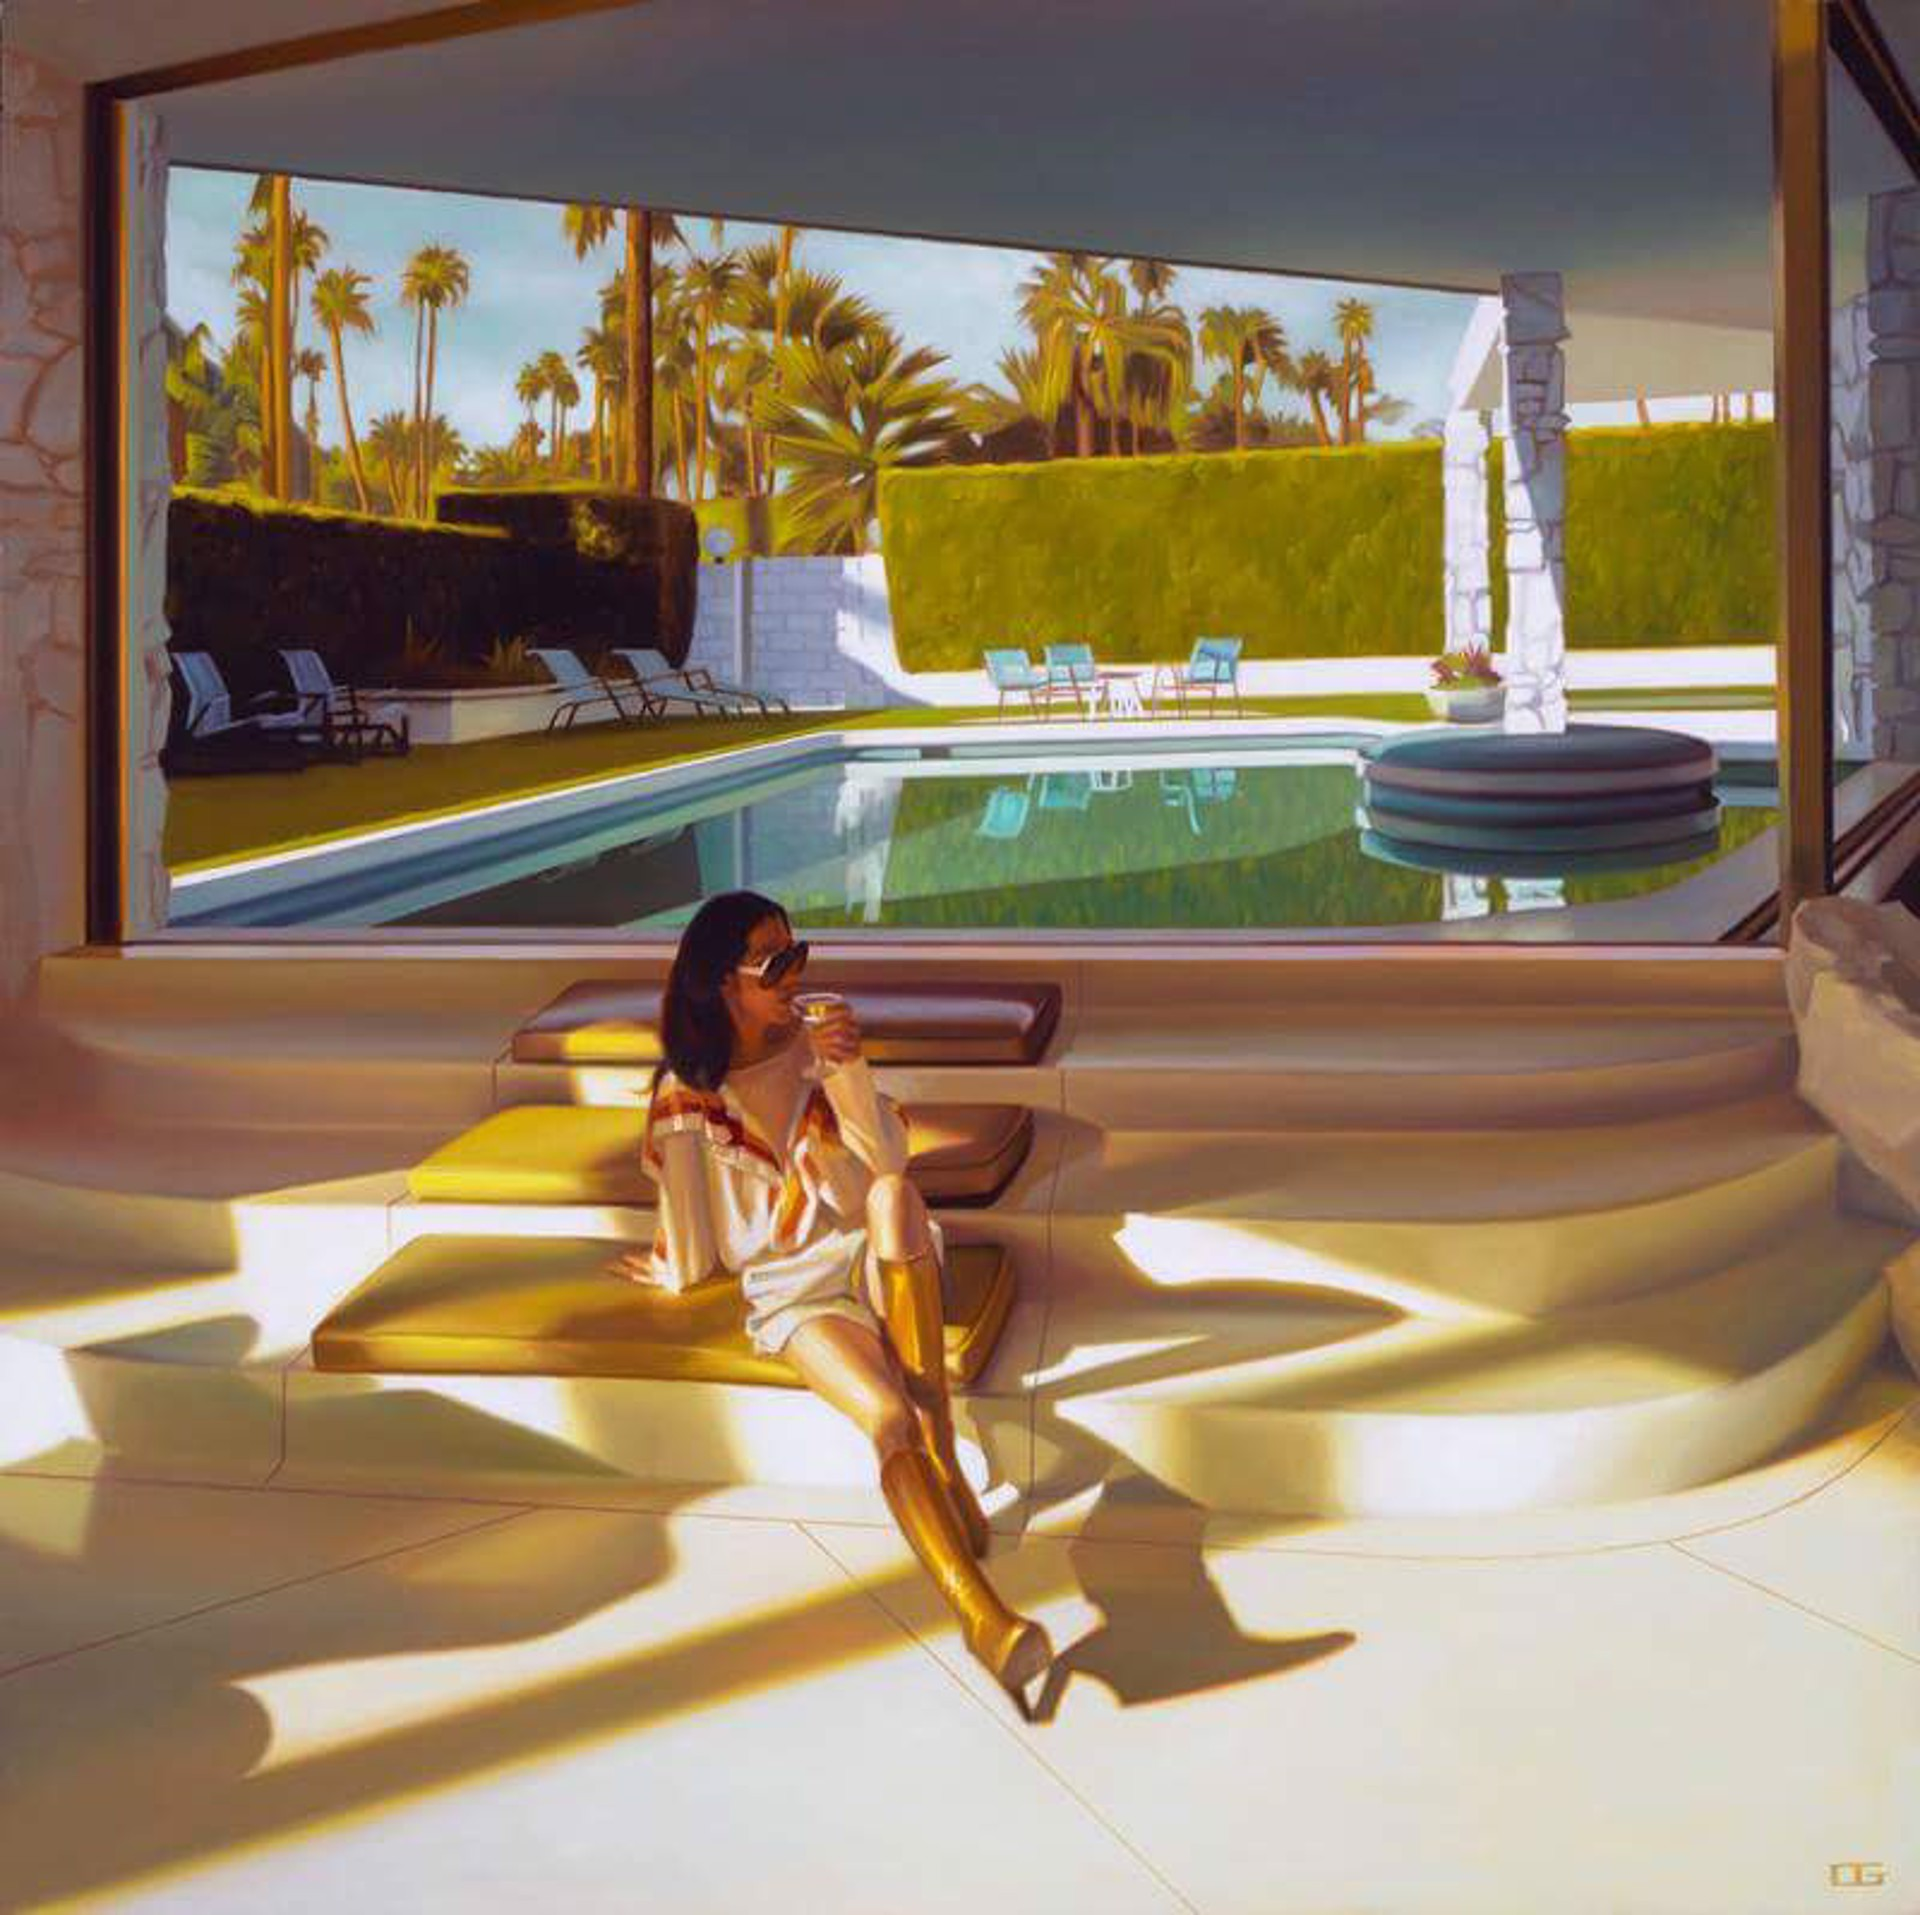 Gold and Martinis (S/N) by Carrie Graber